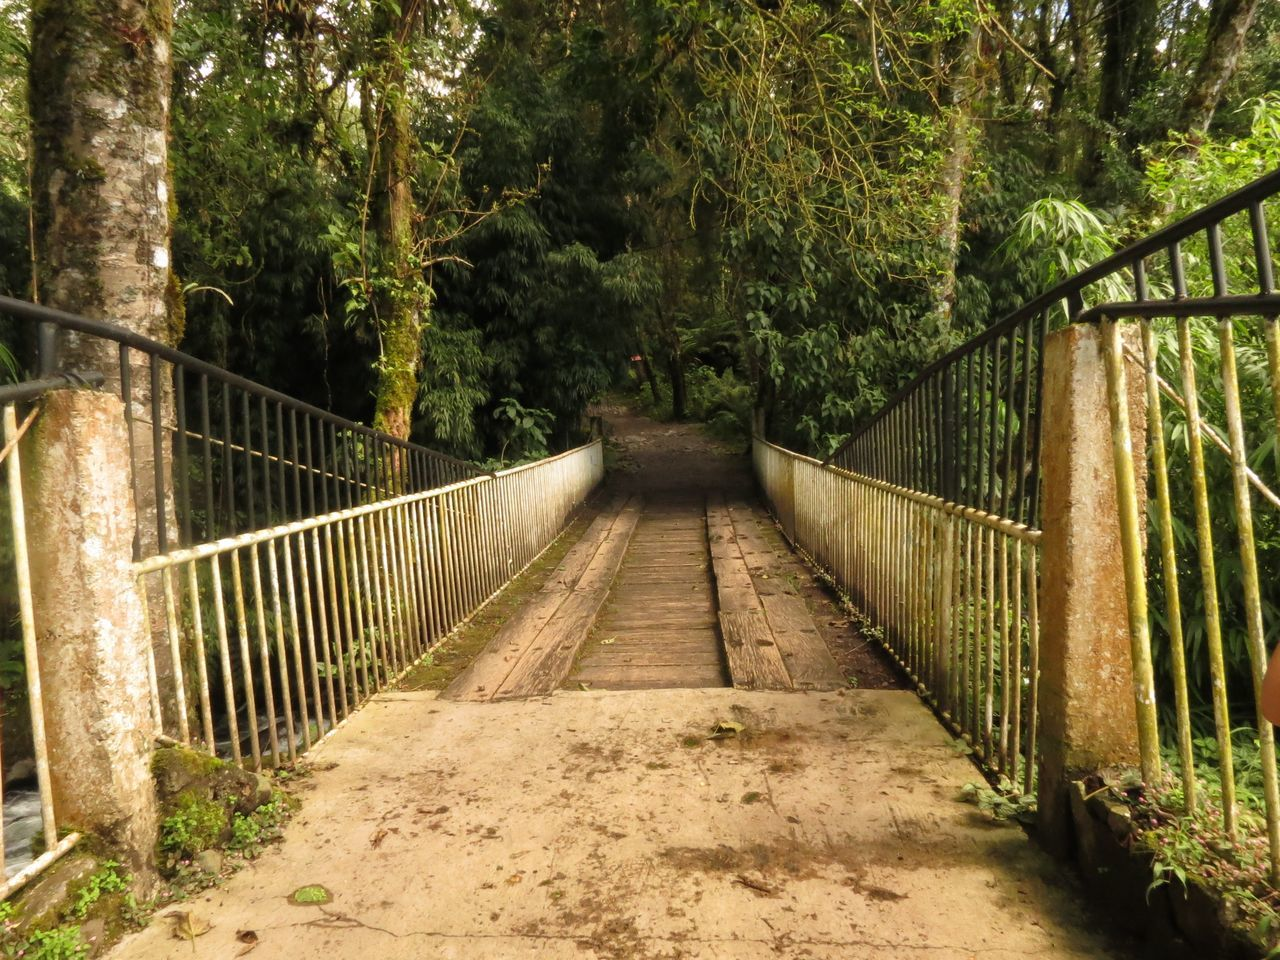 railing, bridge - man made structure, connection, tree, the way forward, footbridge, outdoors, nature, day, bridge, no people, forest